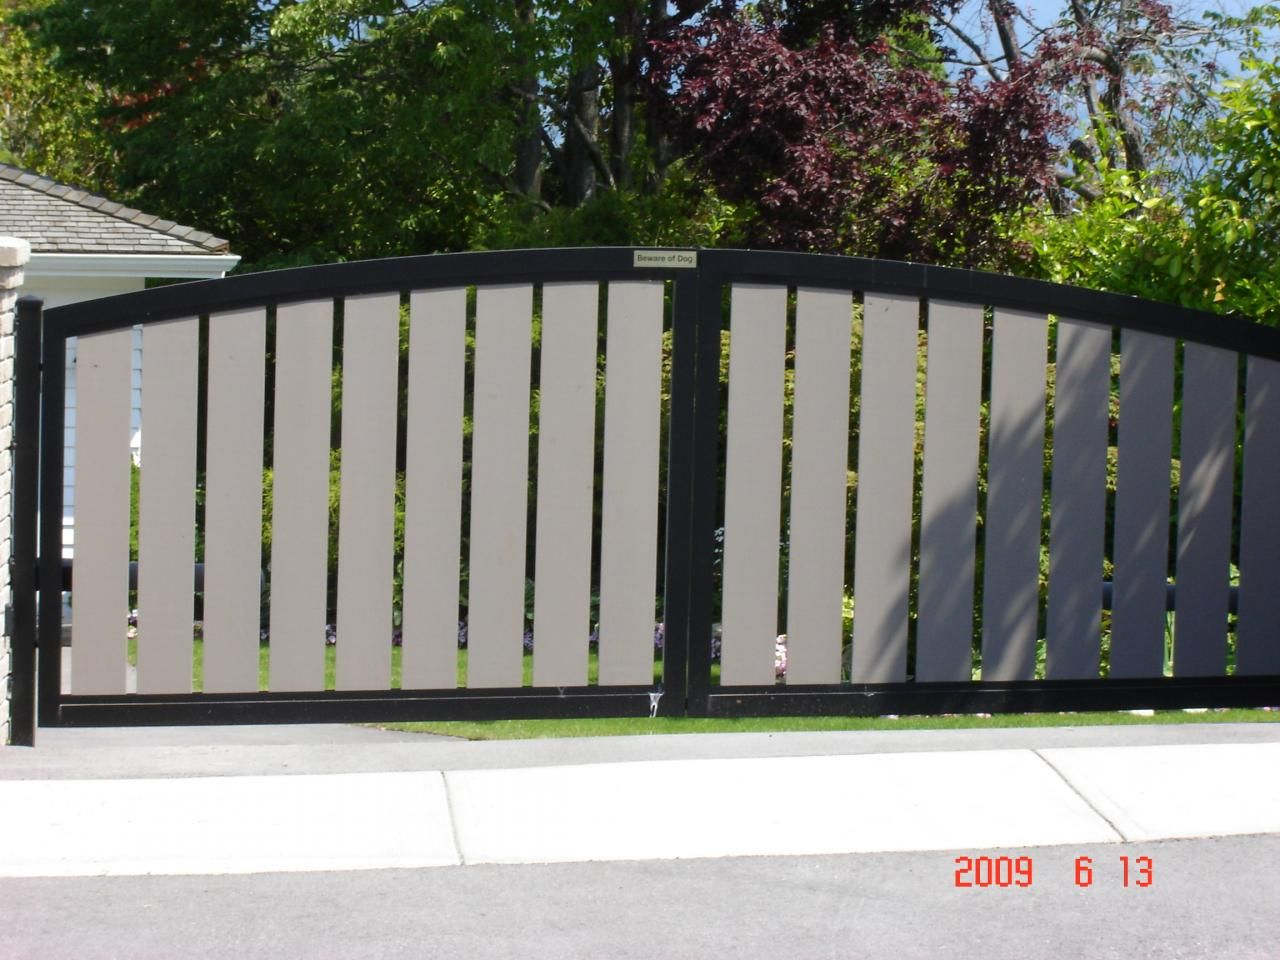 Comfortable Gate Designs 9 Gate Designs Related Keywords   Suggestions Gate  Designs Long Tail. Best 25  Metal gate designs ideas on Pinterest   Metal gate door